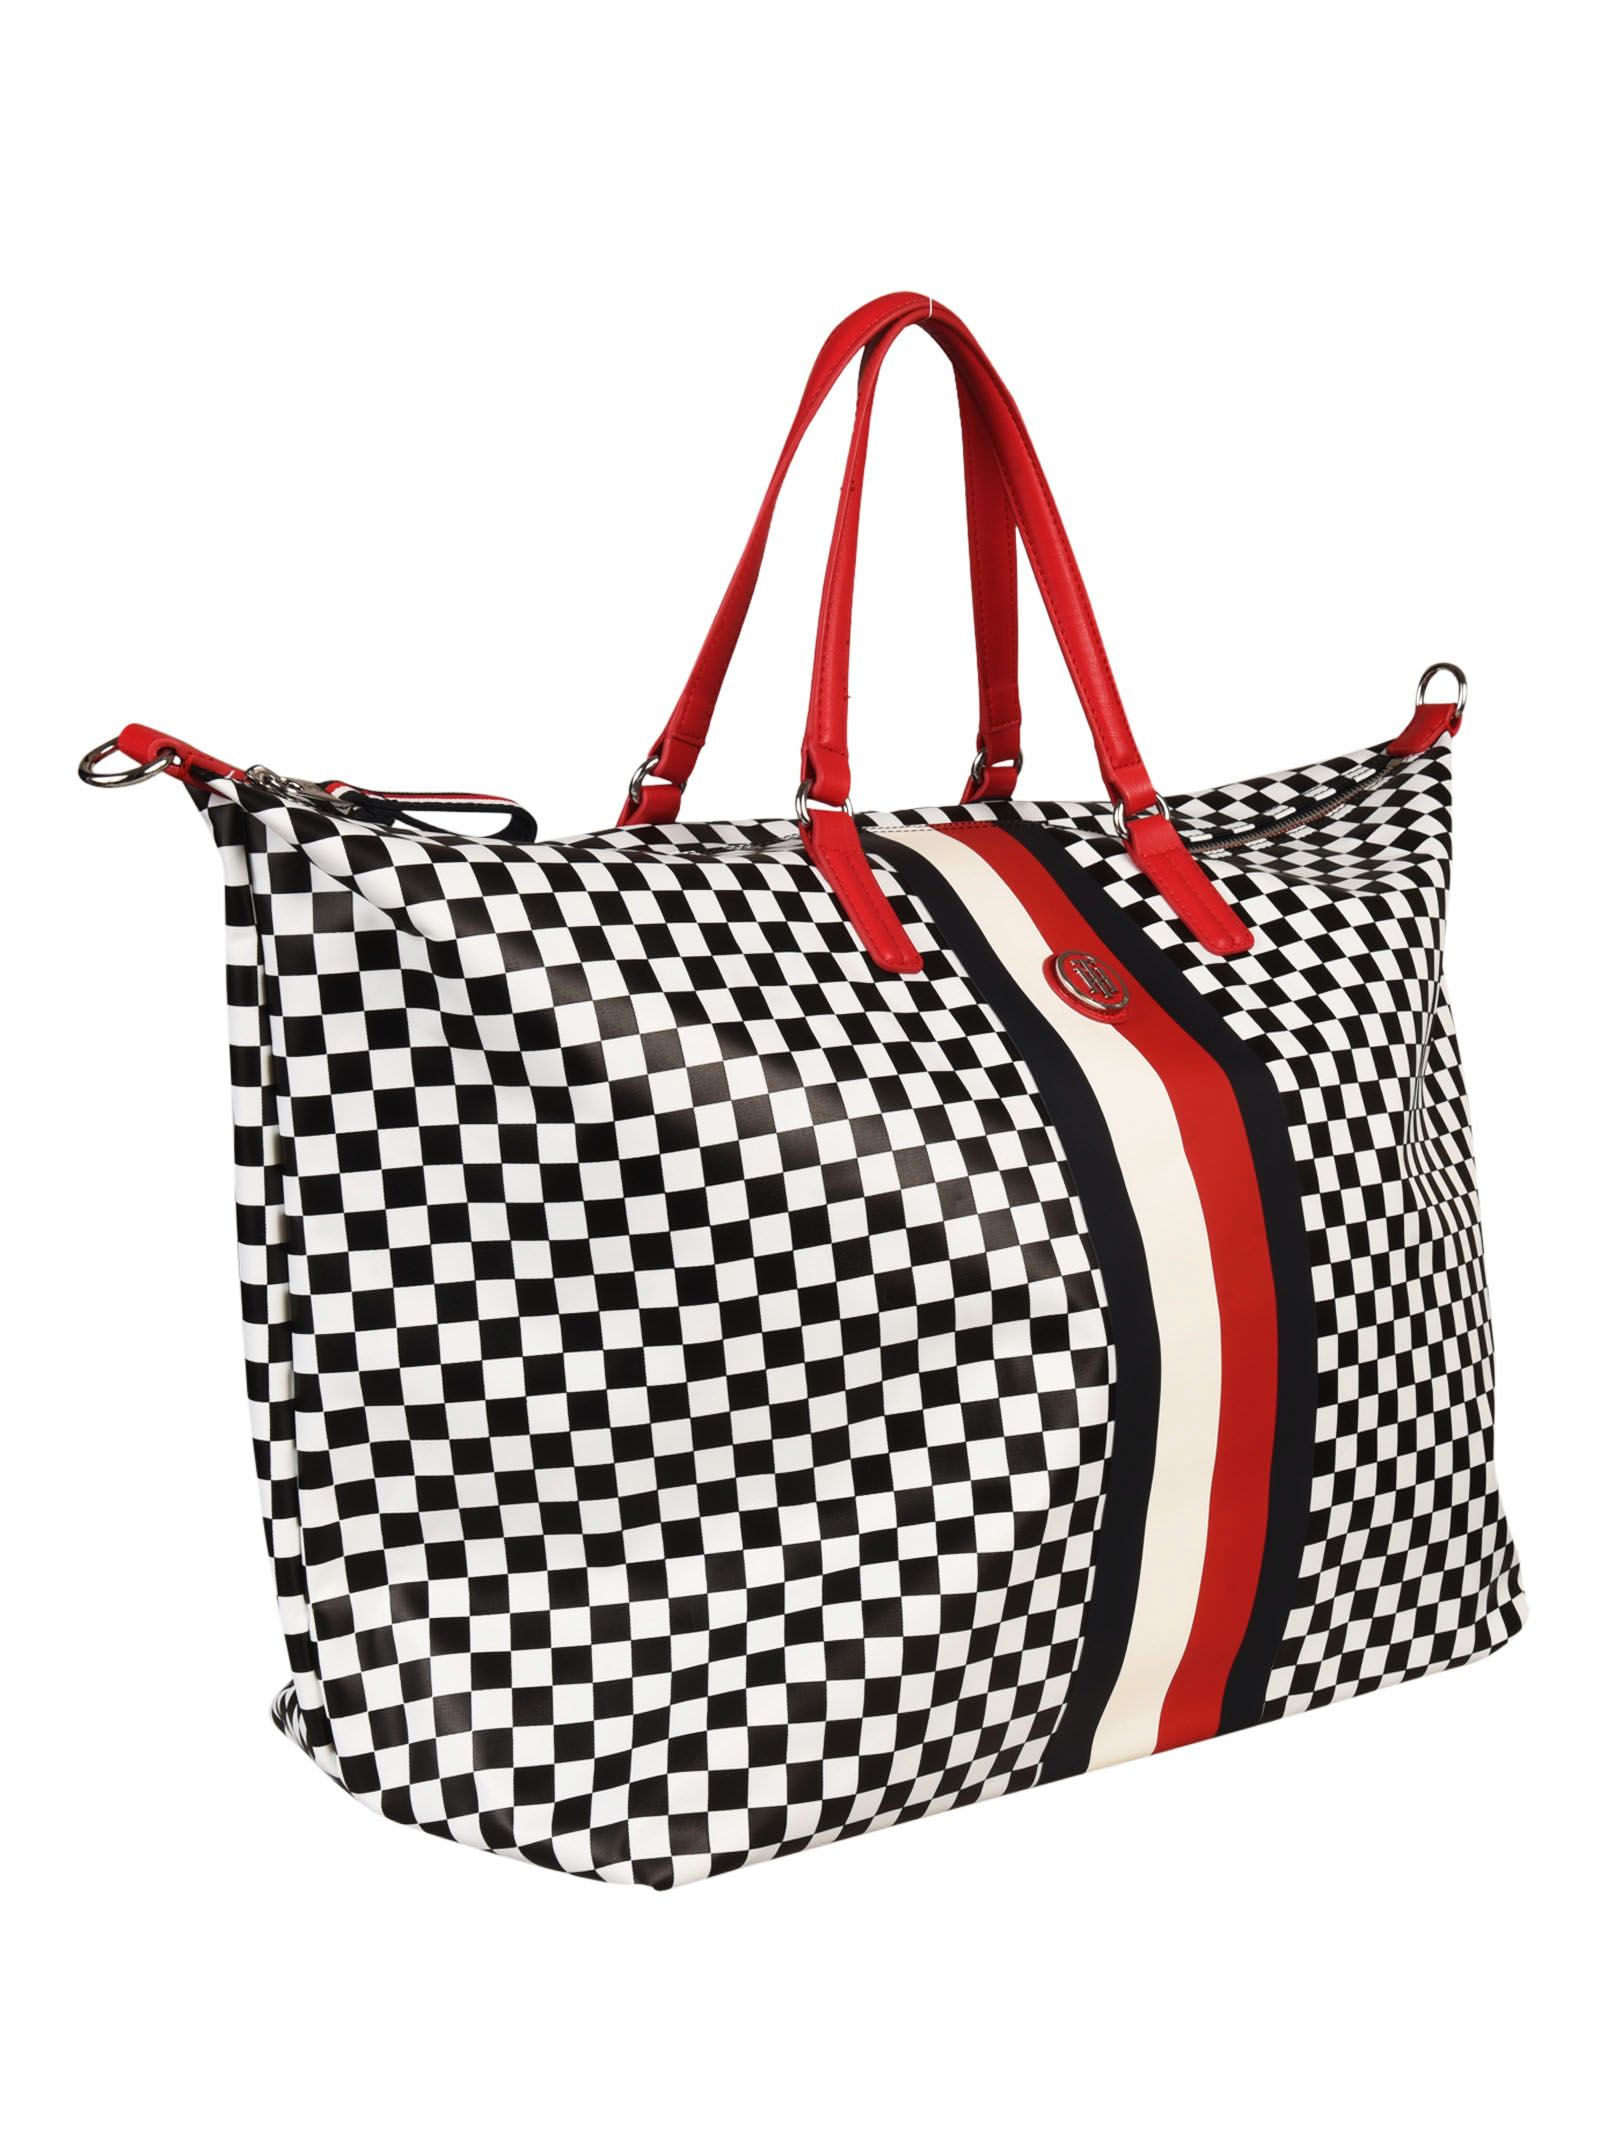 Tommy Hilfiger Tommy Hilfiger X Gigi Hadid Checkered Tote Best Sale Cheap Sale 100% Authentic Pay With Visa Cheap Price yg4fxiJ